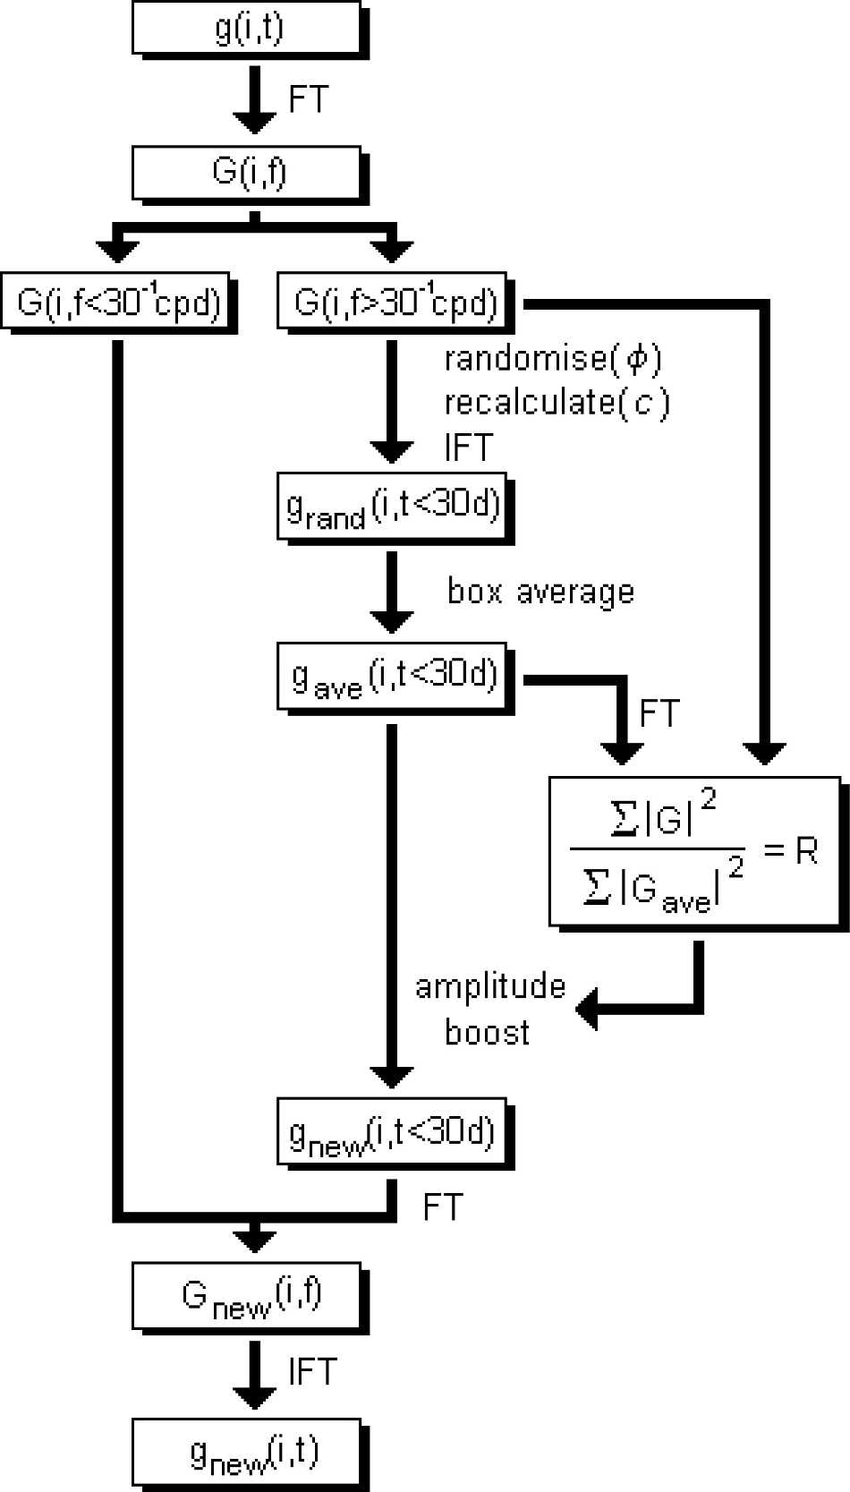 Flow diagram, describing the process of randomizing the